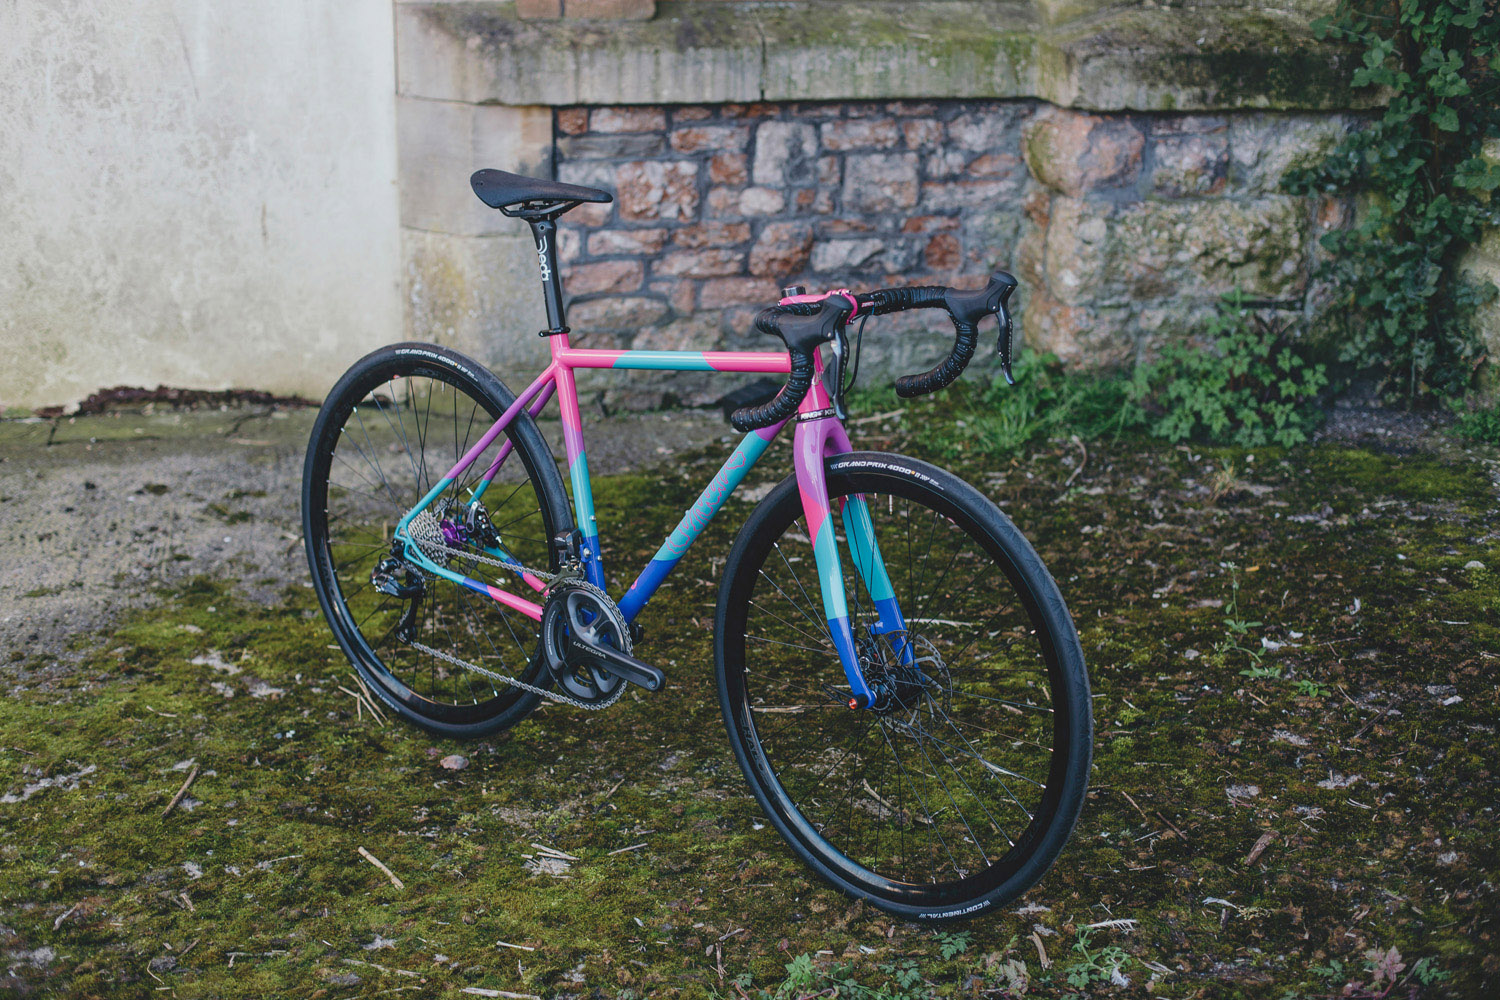 quirk_cycles_eleanors_tcr_dazzler_JPEG_0003.jpg